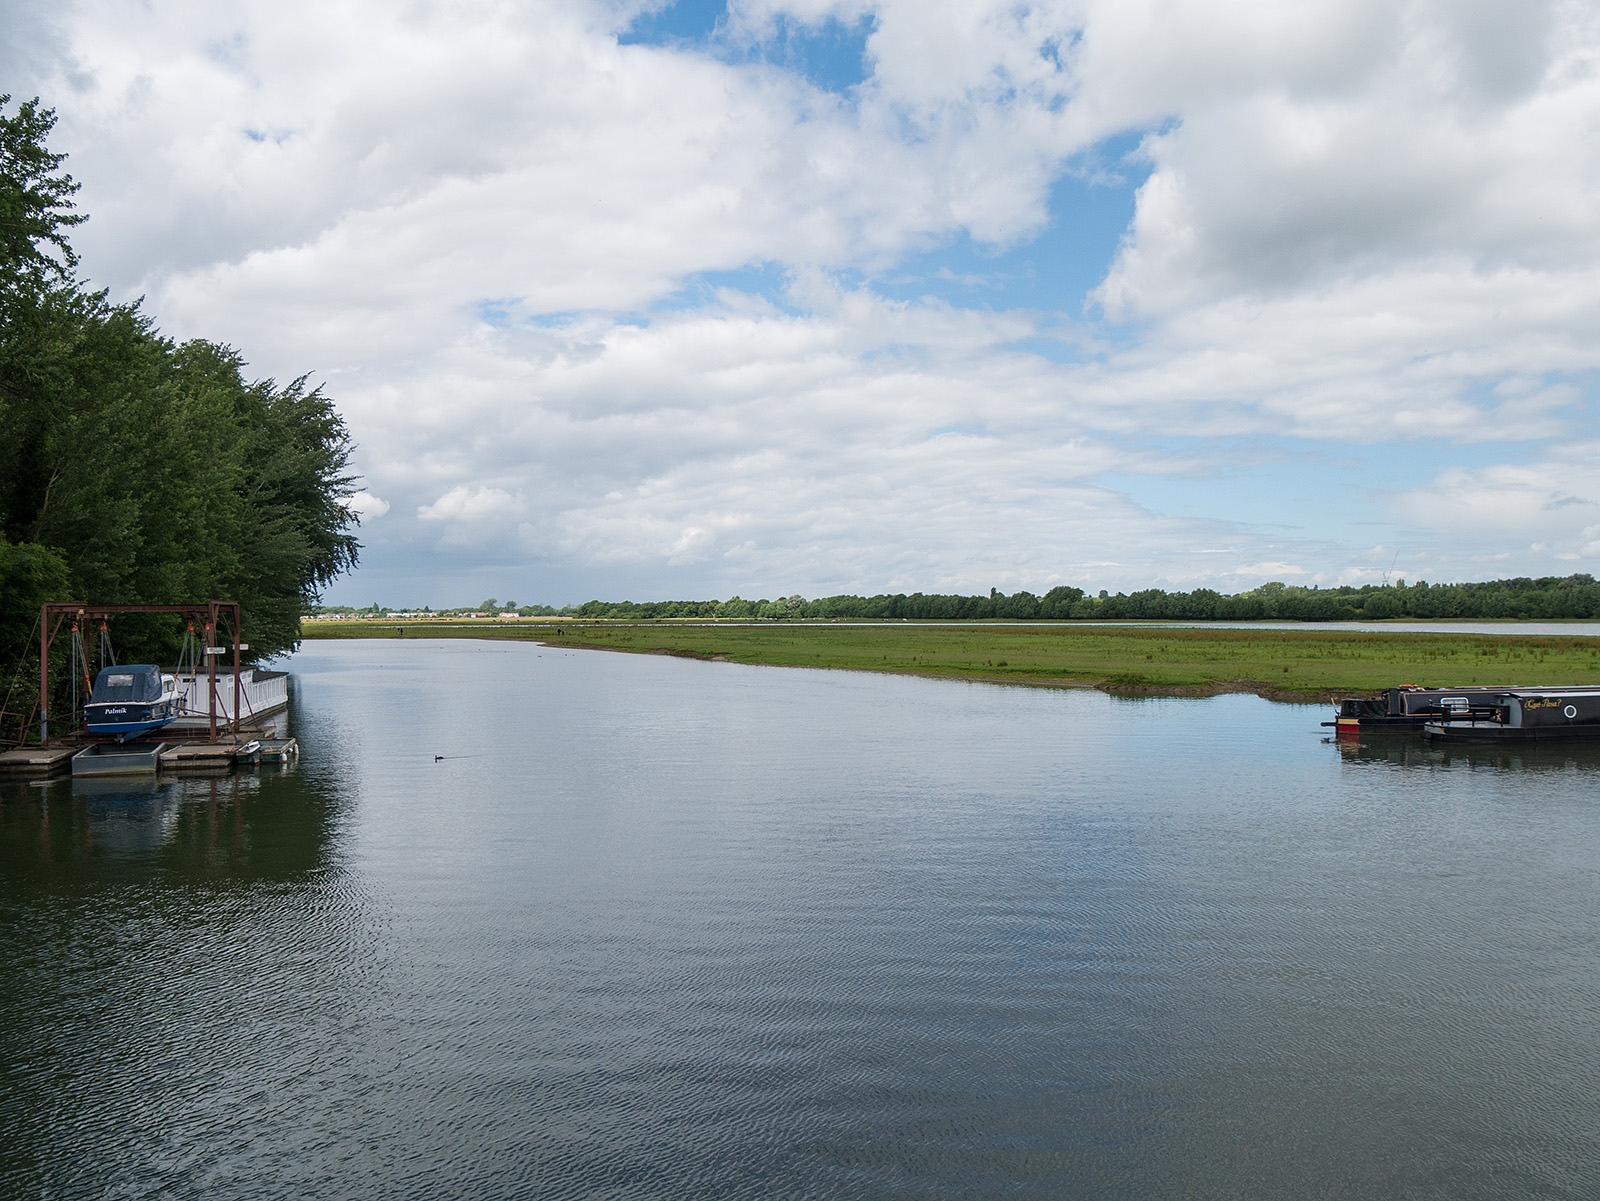 Looking over the river towards Port Meadow